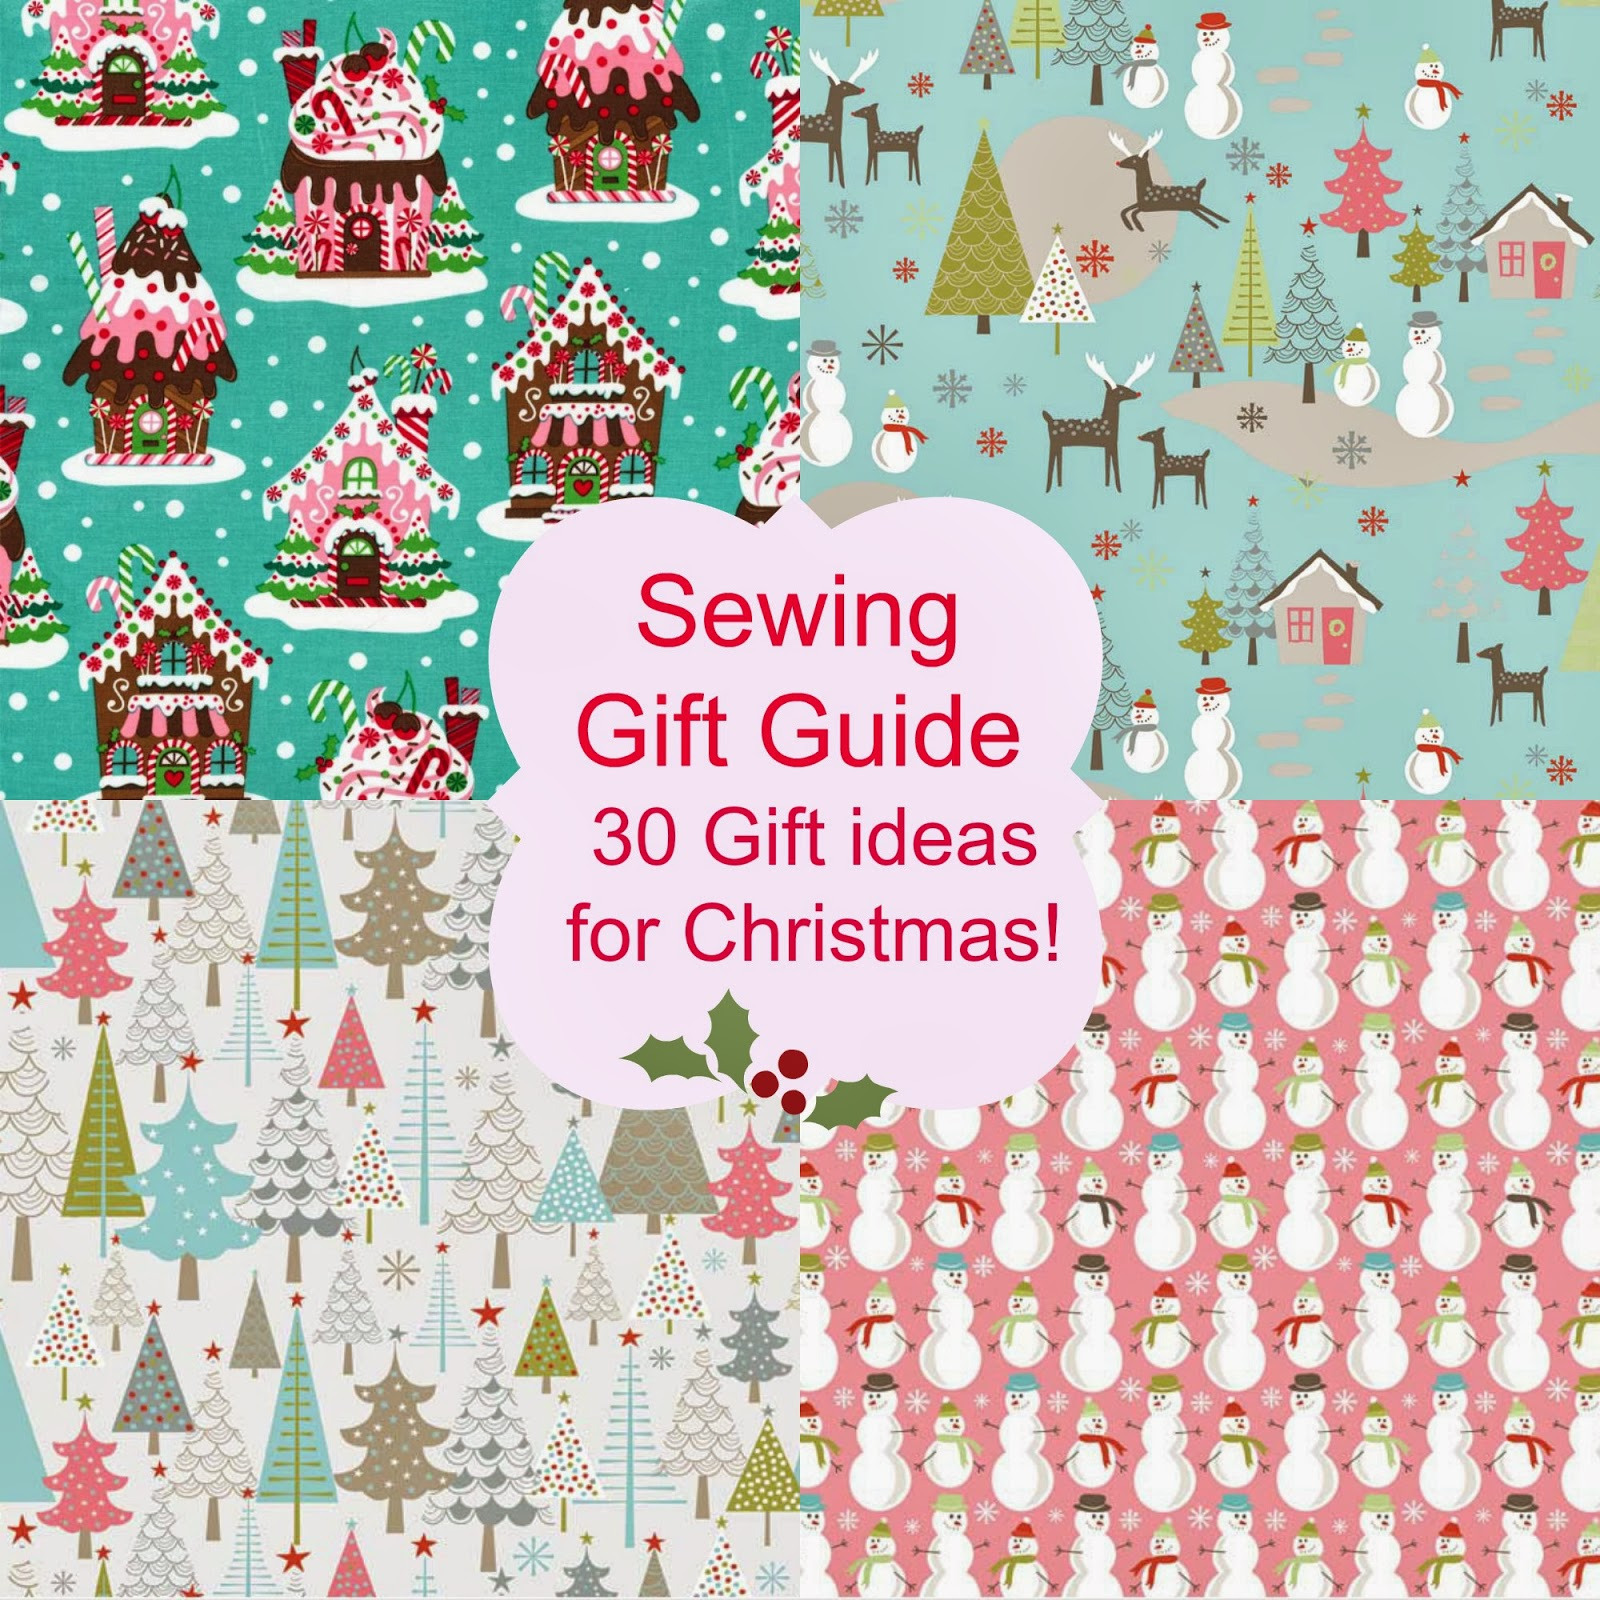 Sewn christmas gift ideas